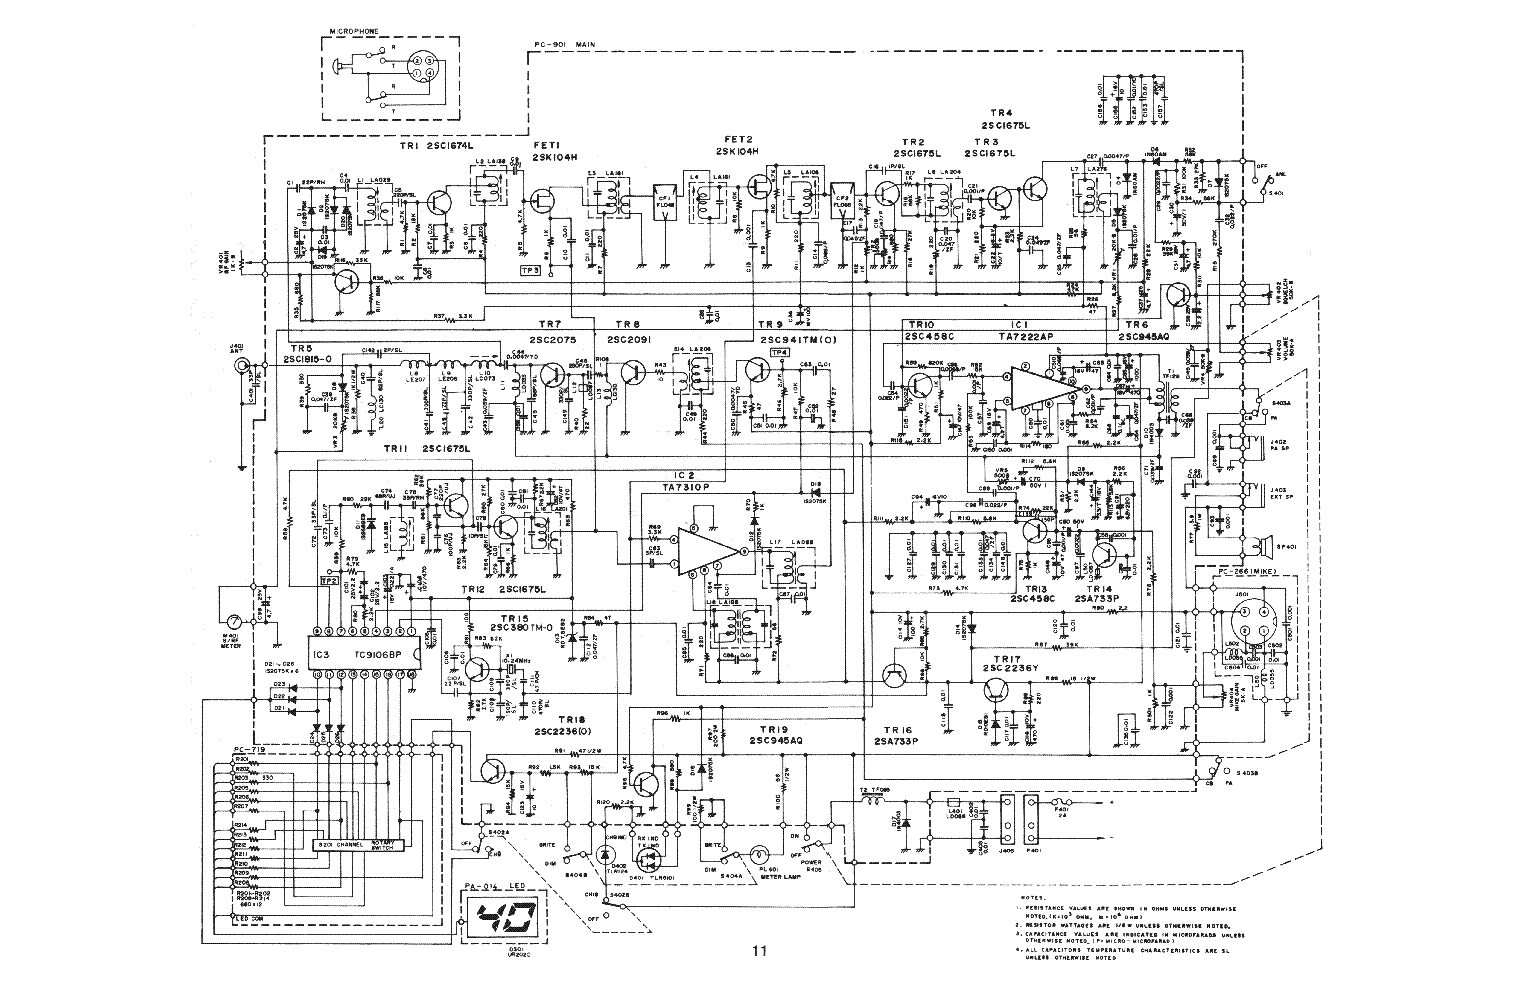 UNIDEN AX44 SCH service manual (1st page)